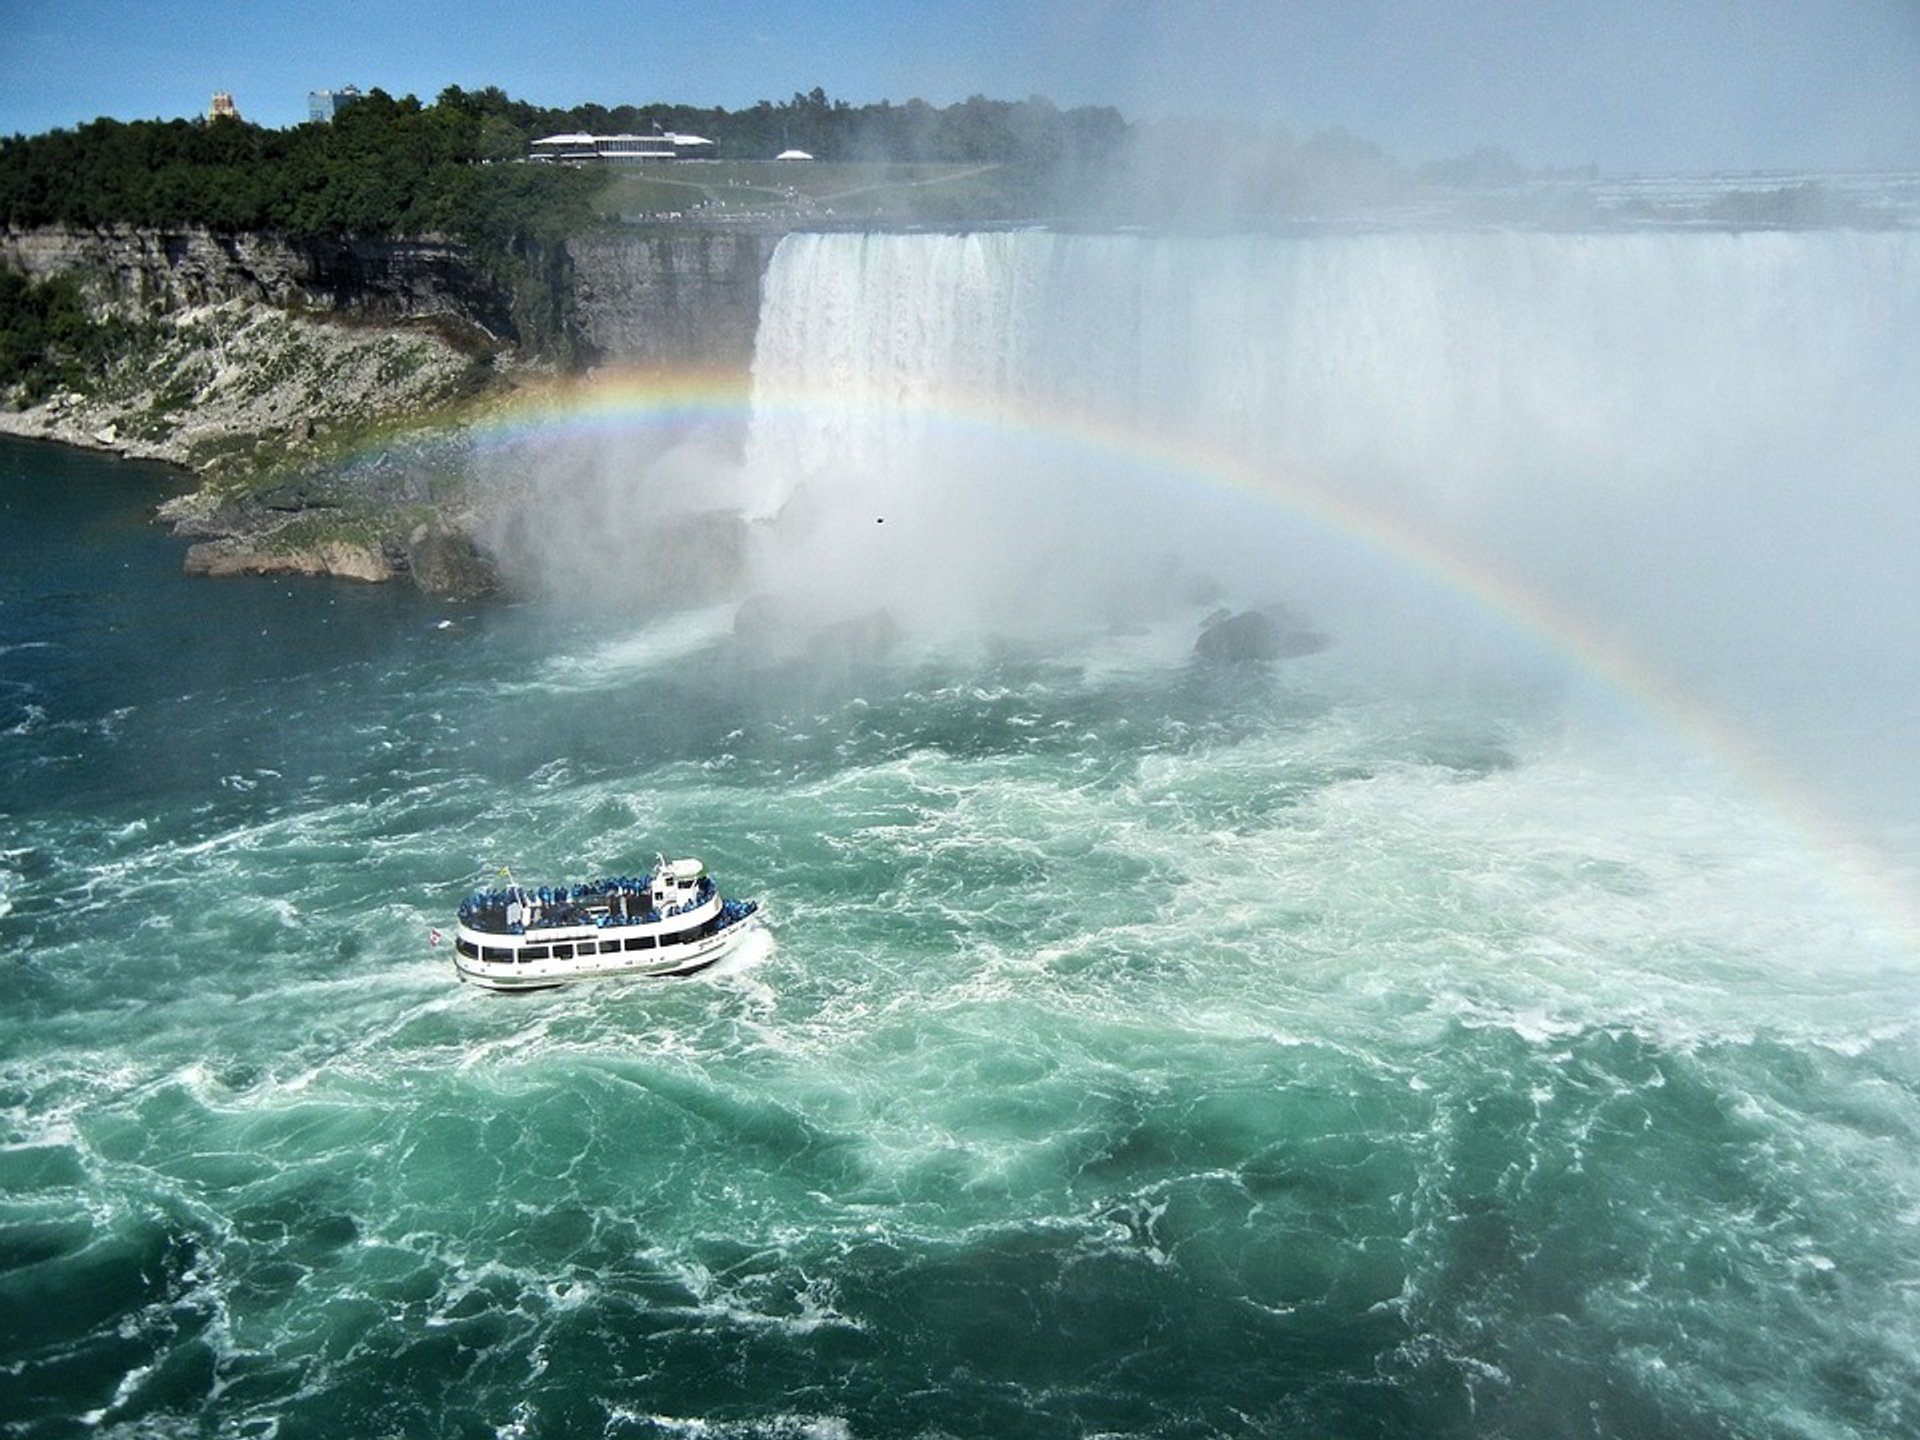 Maid of the Mist Boat Rides in Niagara Falls - Best Time